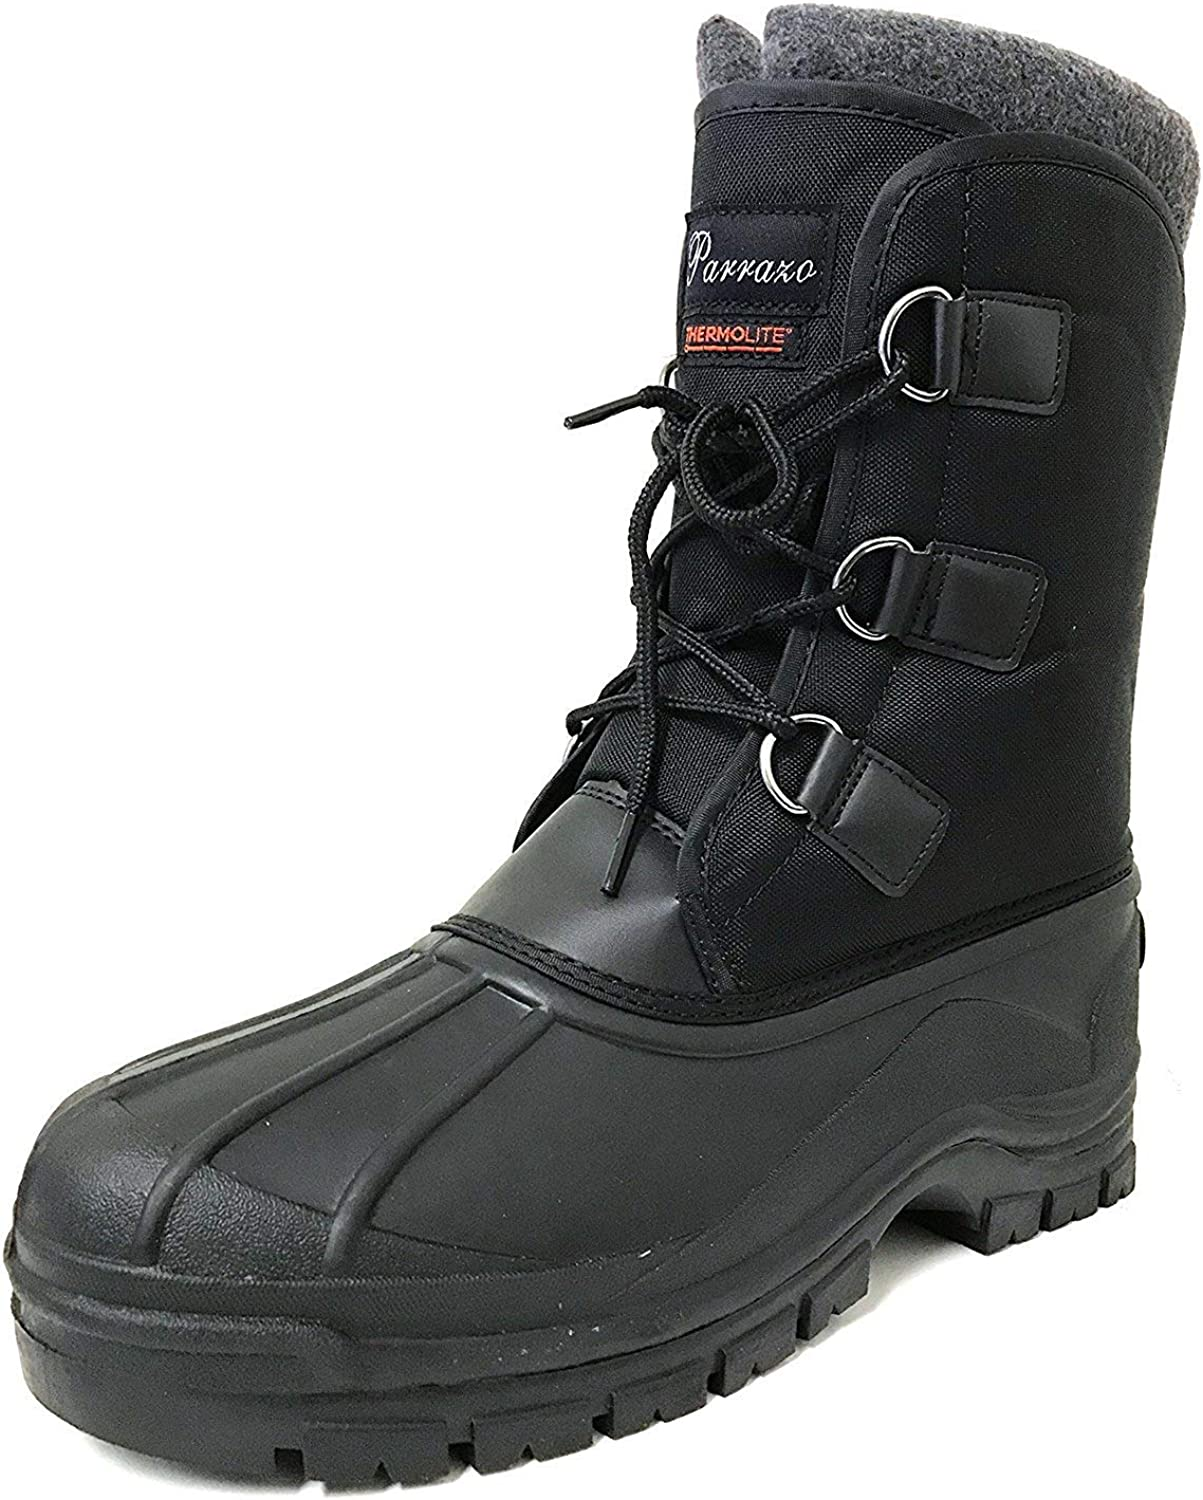 G4U-Parrazo Alpine Mens Winter Snow Boot Heavy Duty Water Resistant Lace Up shoes